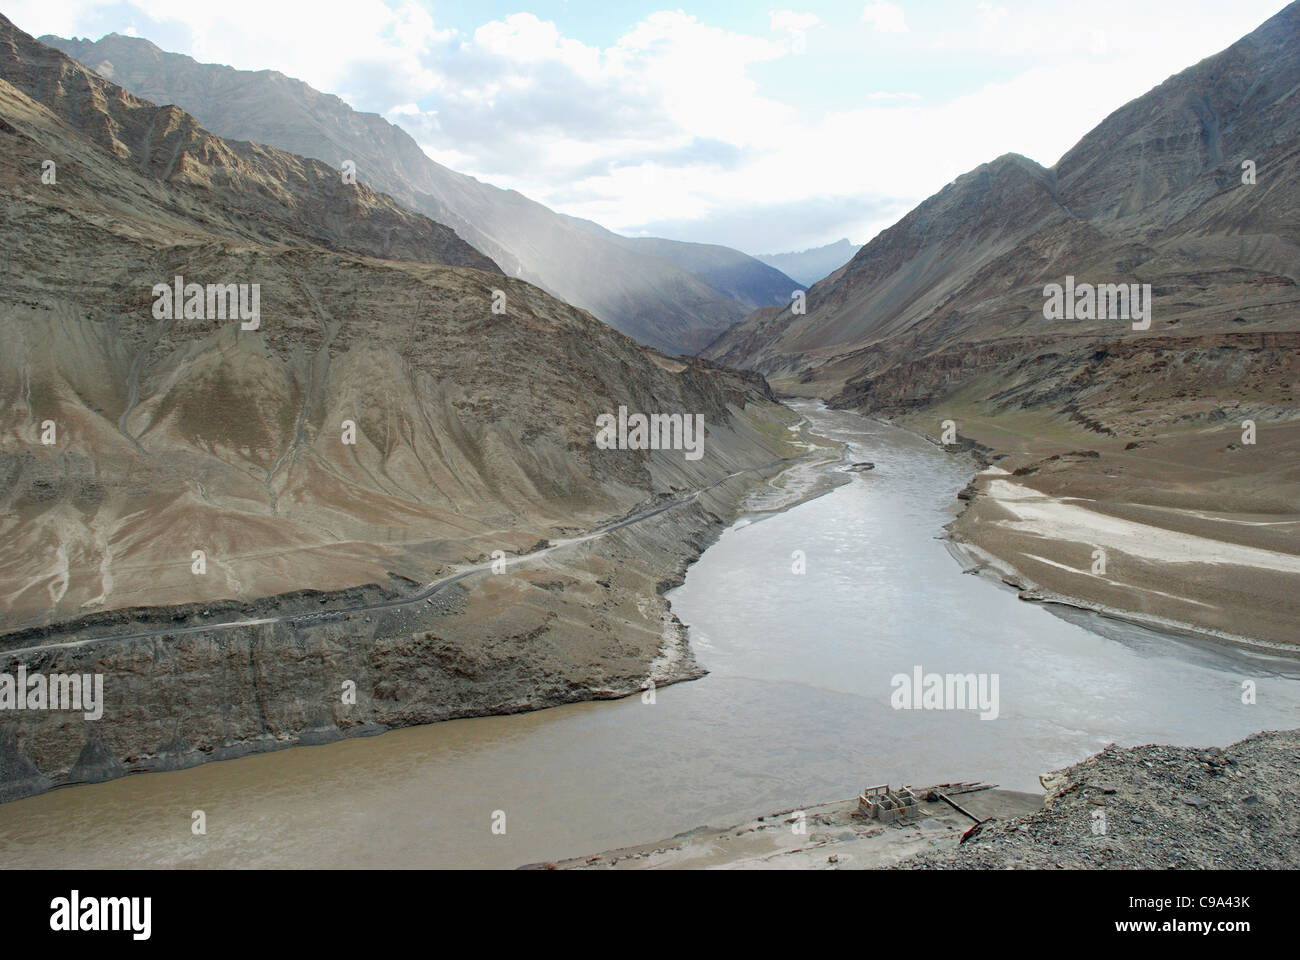 River Indus, near the confluence with river Zanskar against backdrop of the setting Sun – creating a spectrum of - Stock Image